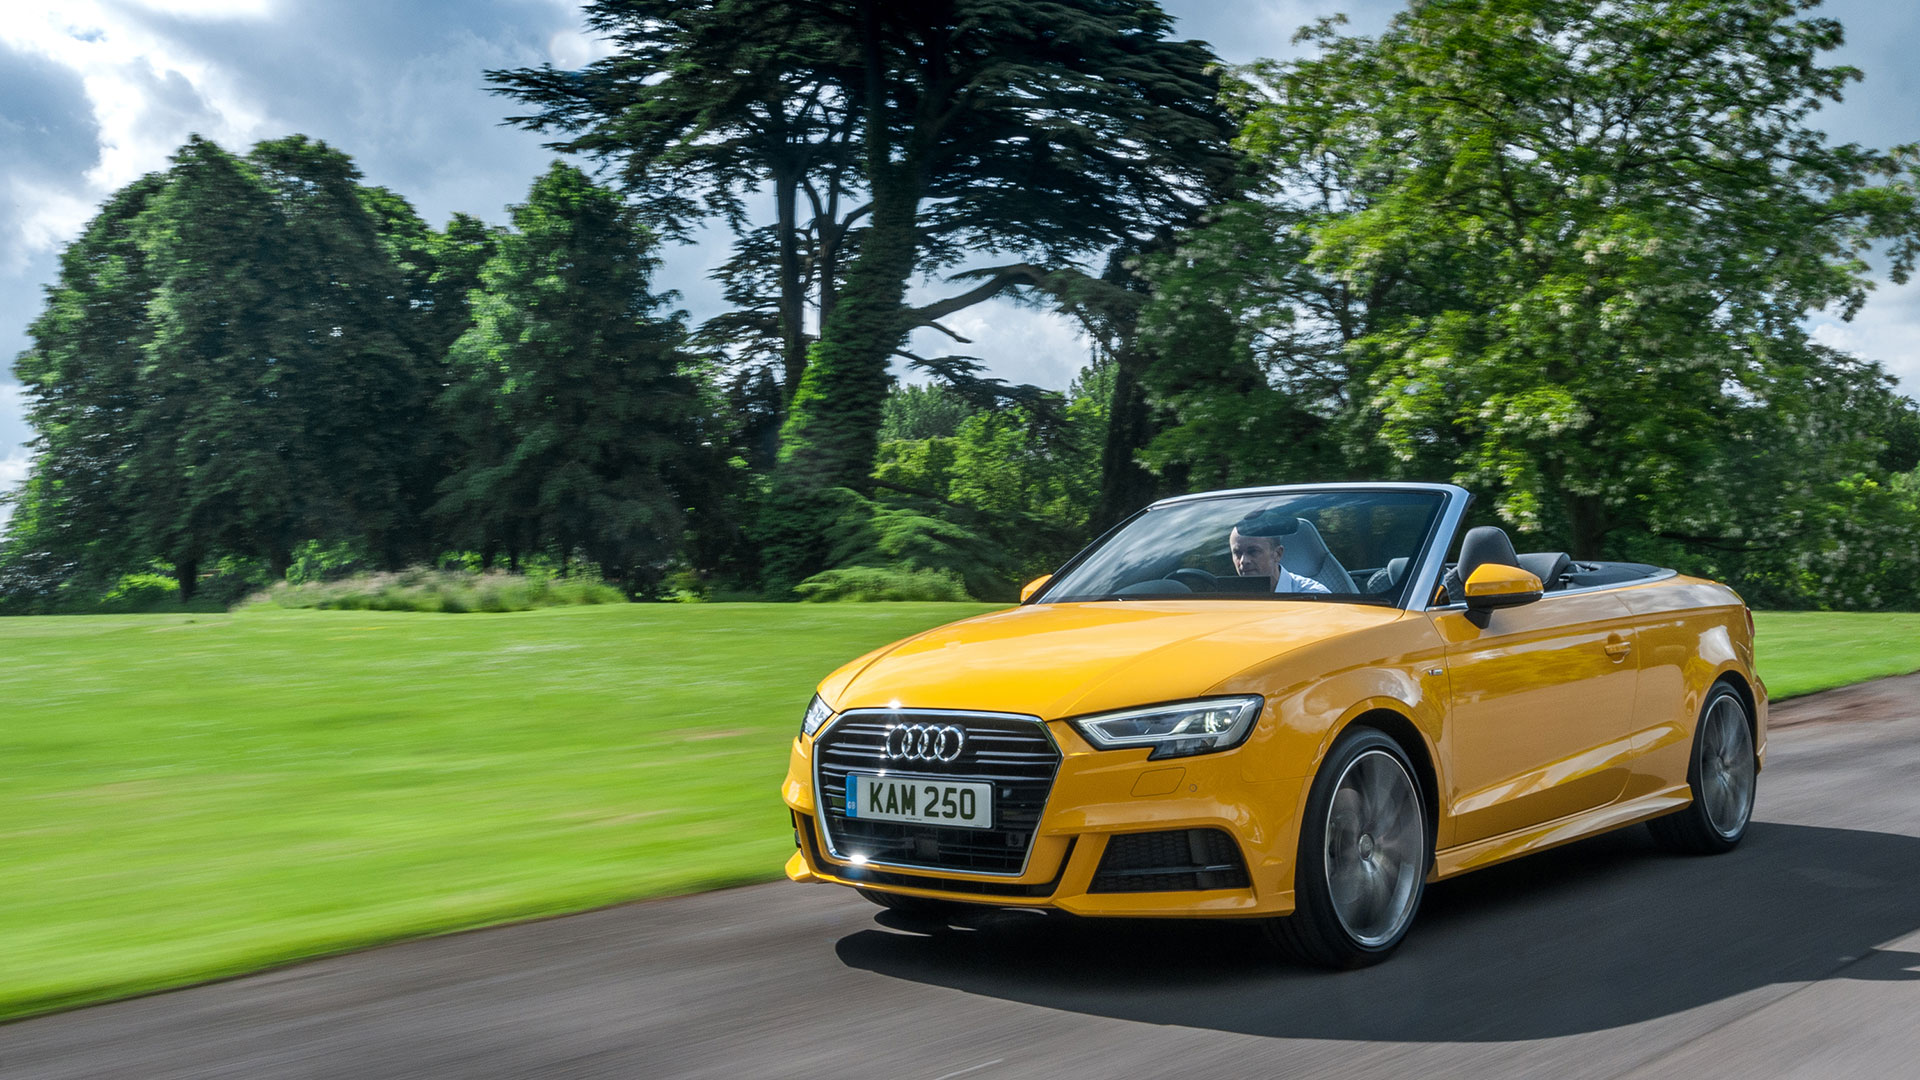 audi a3 cabriolet convertible 2016 review auto trader uk. Black Bedroom Furniture Sets. Home Design Ideas